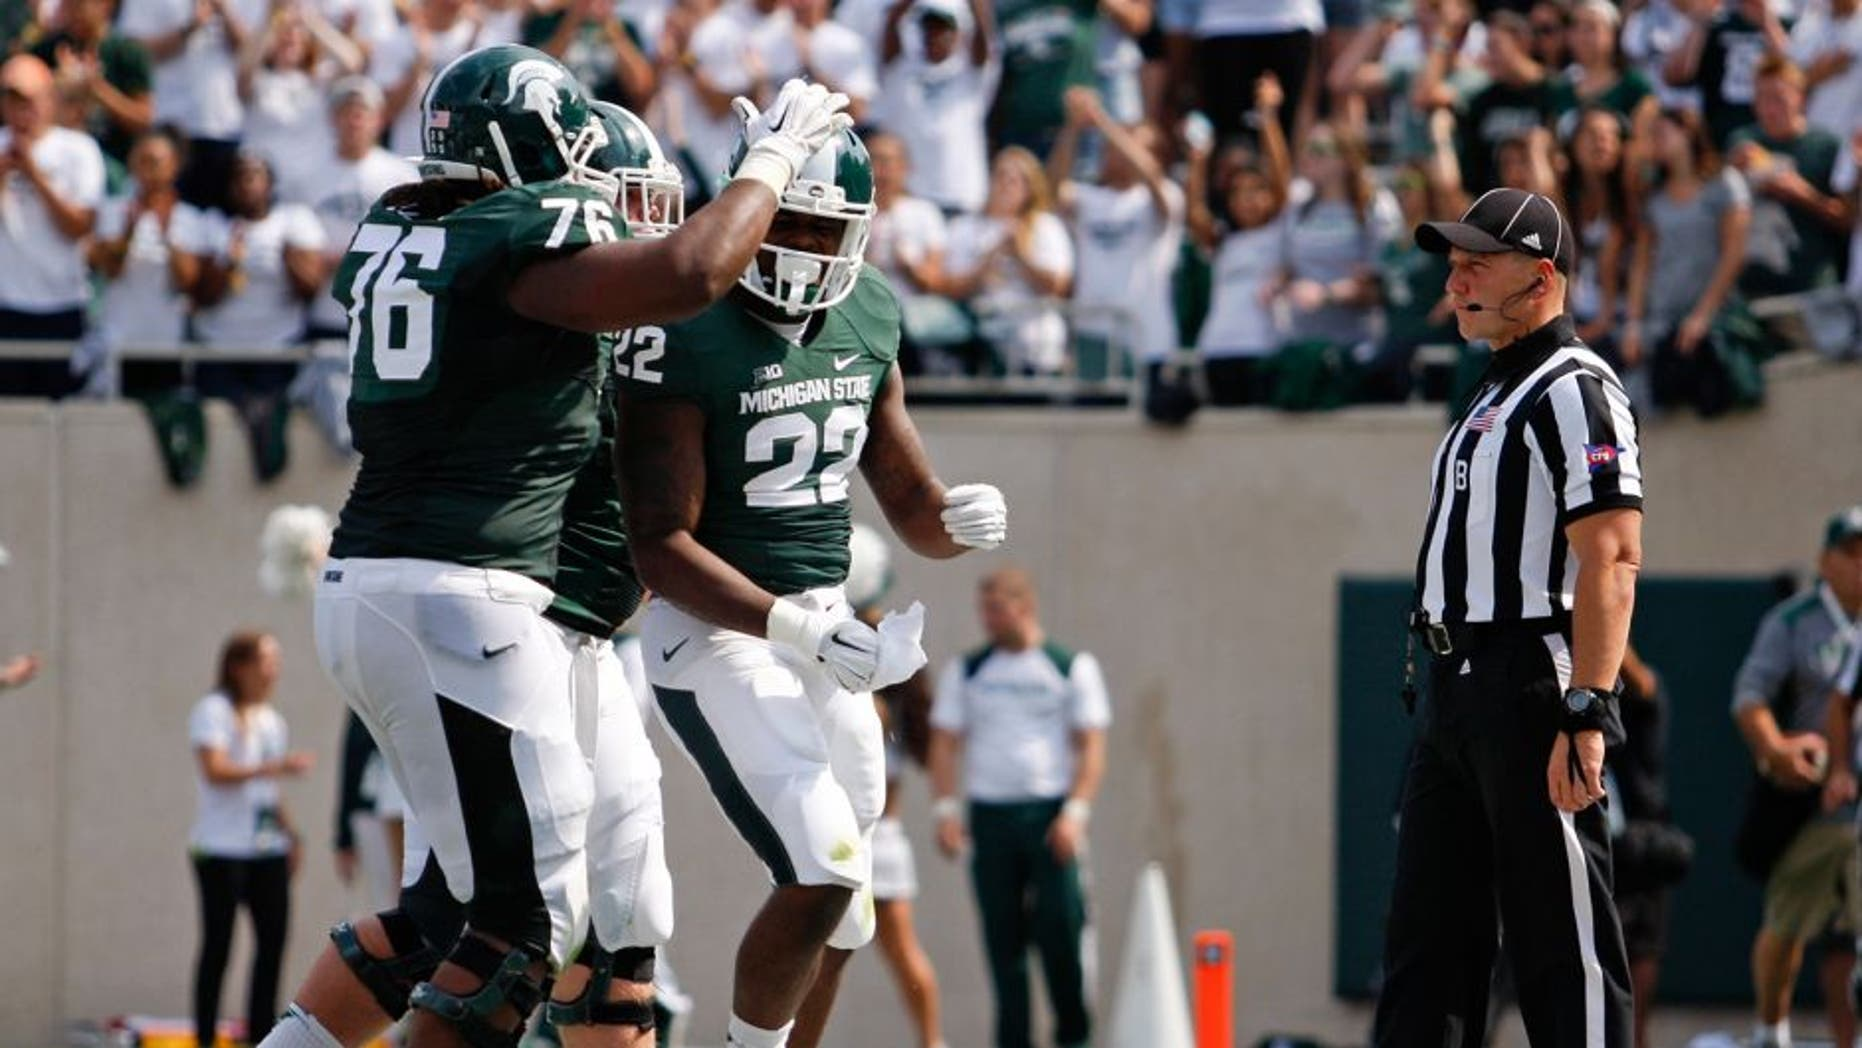 Sep 20, 2014; East Lansing, MI, USA; Michigan State Spartans running back Delton Williams (22) celebrates after a touchdown during the second quarter against the Eastern Michigan Eagles at Spartan Stadium. Mandatory Credit: Raj Mehta-USA TODAY Sports